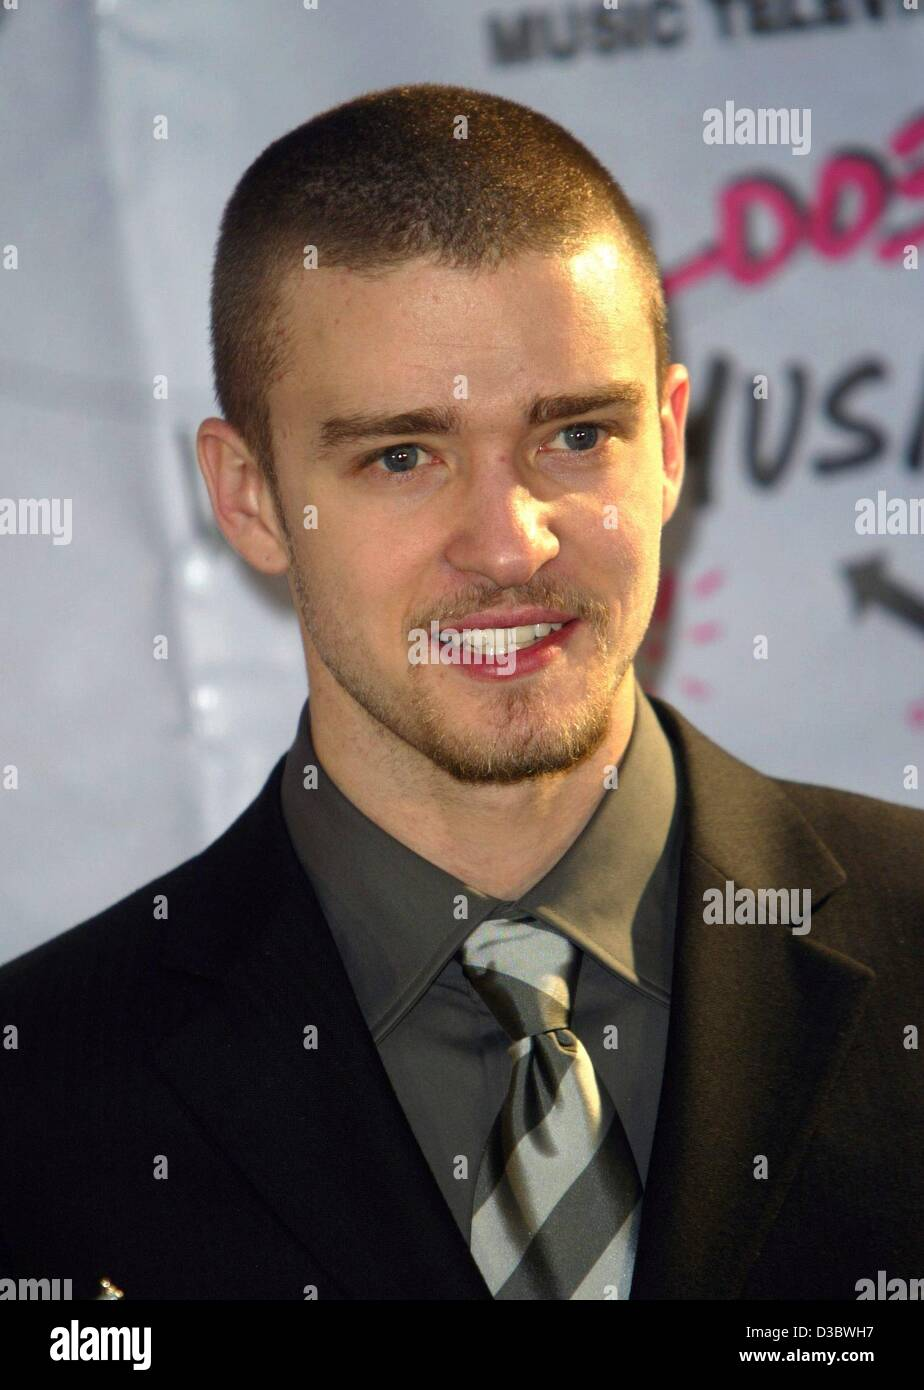 best dating justin timberlake dance videos